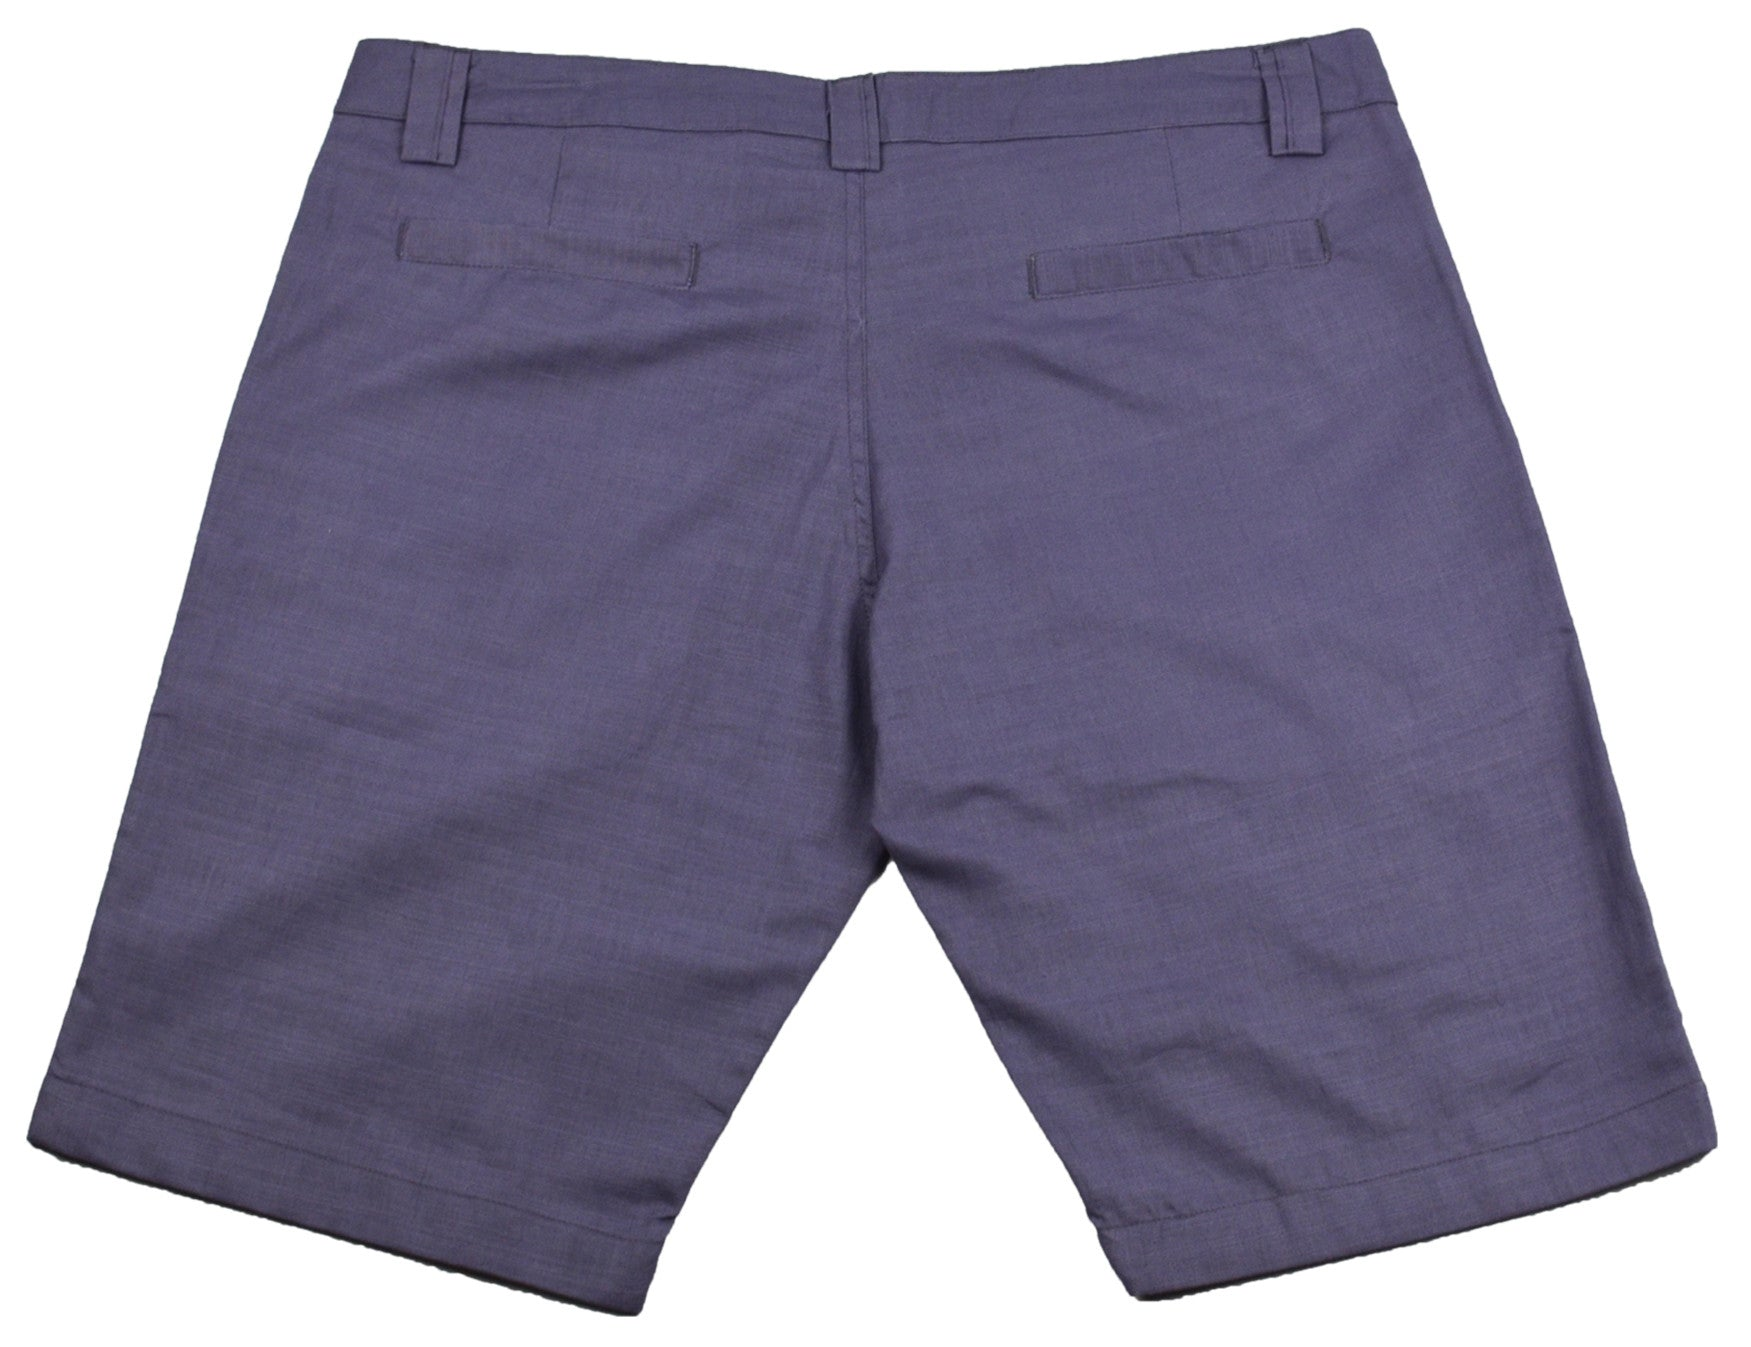 Purple/Gray Cotton Shorts - Happy Pants - 2